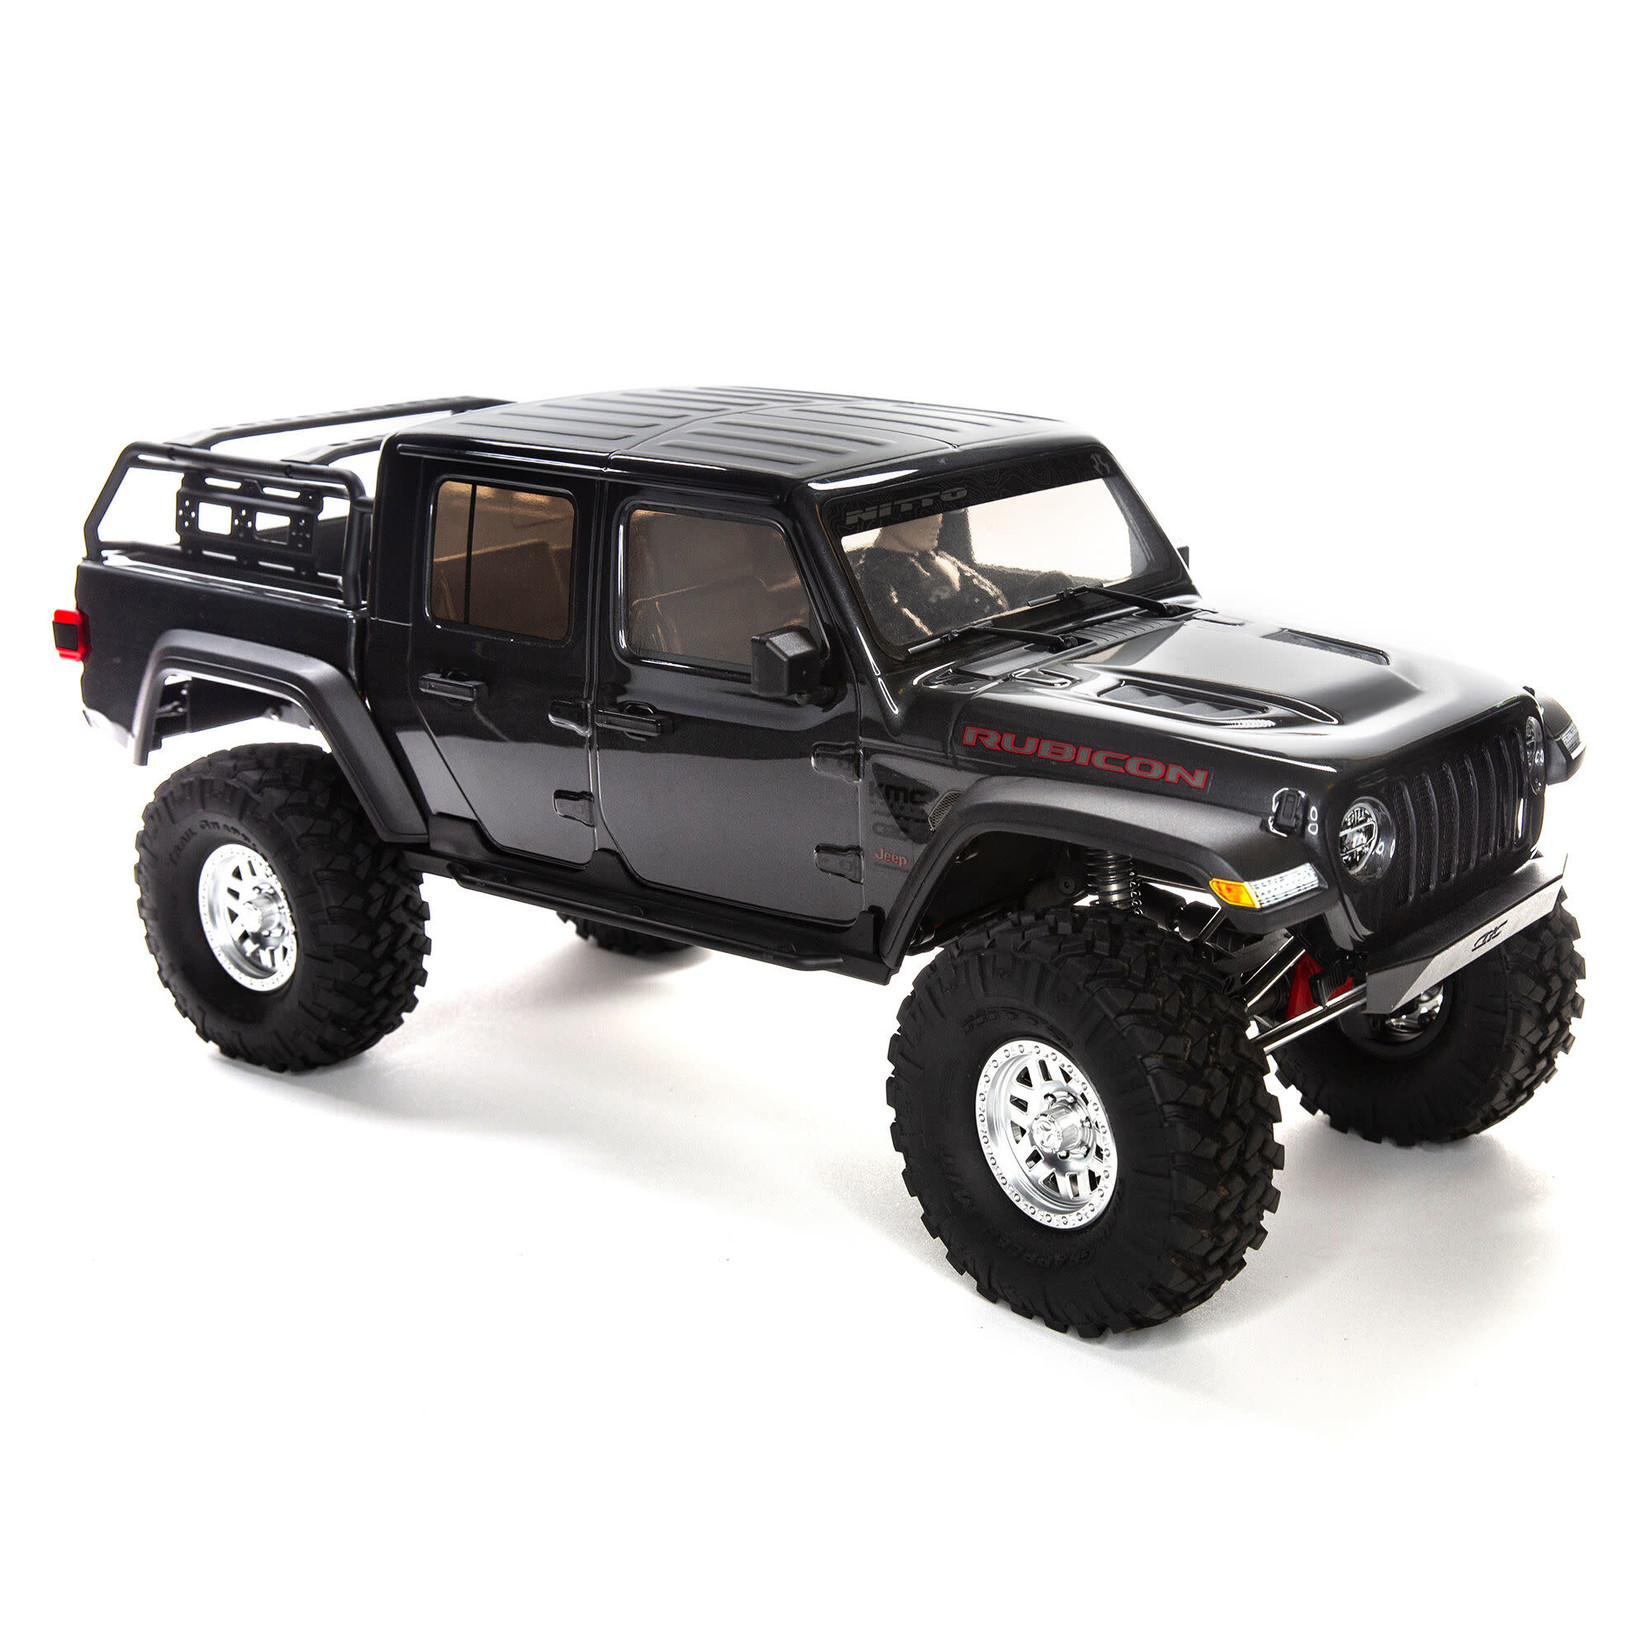 Axial AXI03006 1/10 SCX10 III Jeep JT Gladiator Rock Crawler with Portals RTR